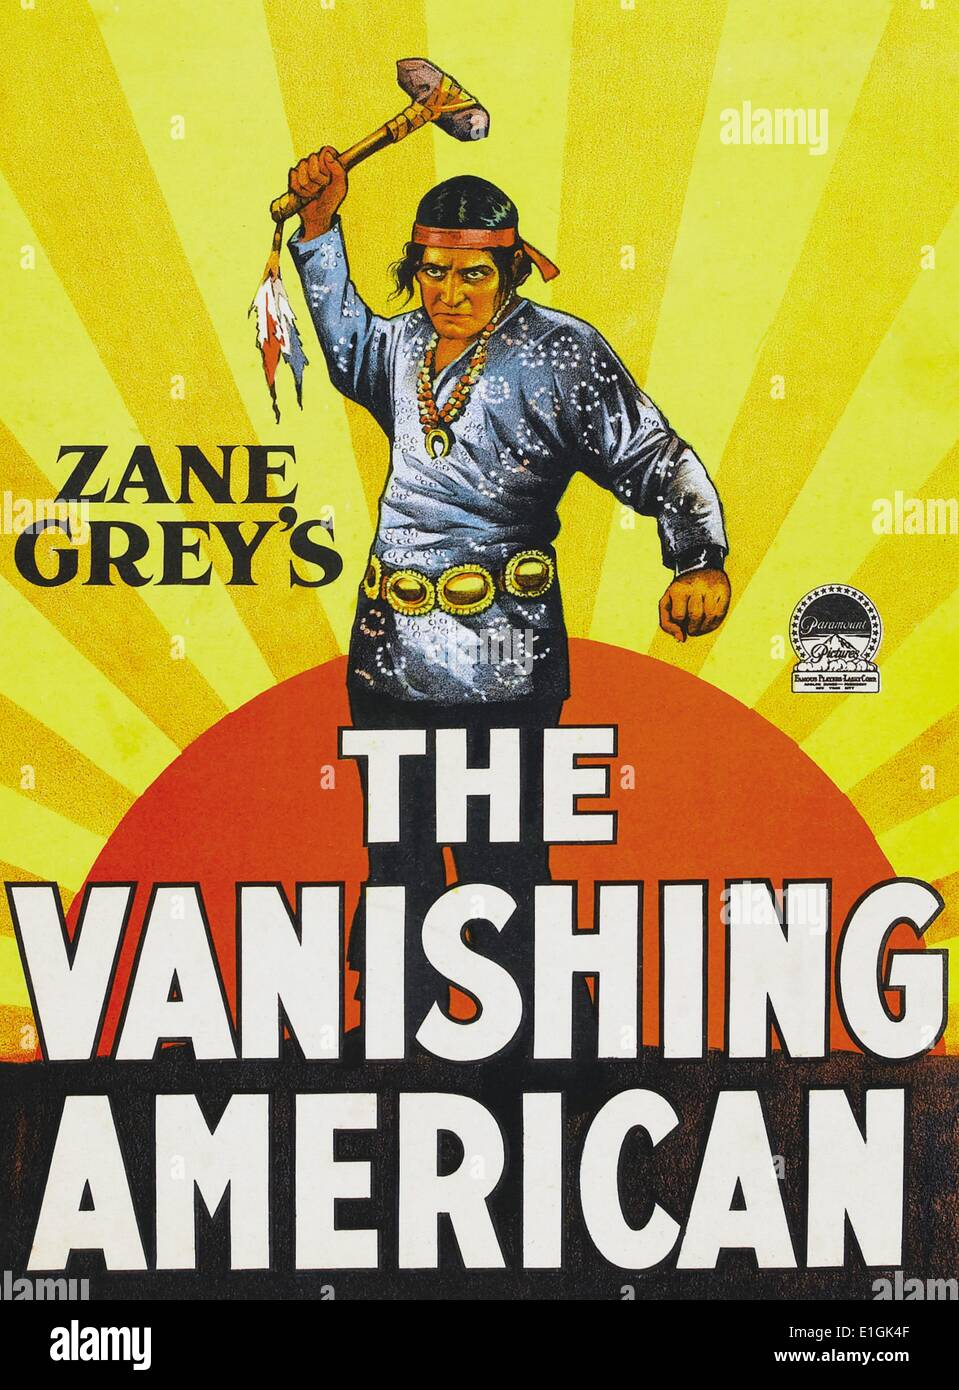 'The Vanishing American a silent film western avec Richard Dix. Photo Stock